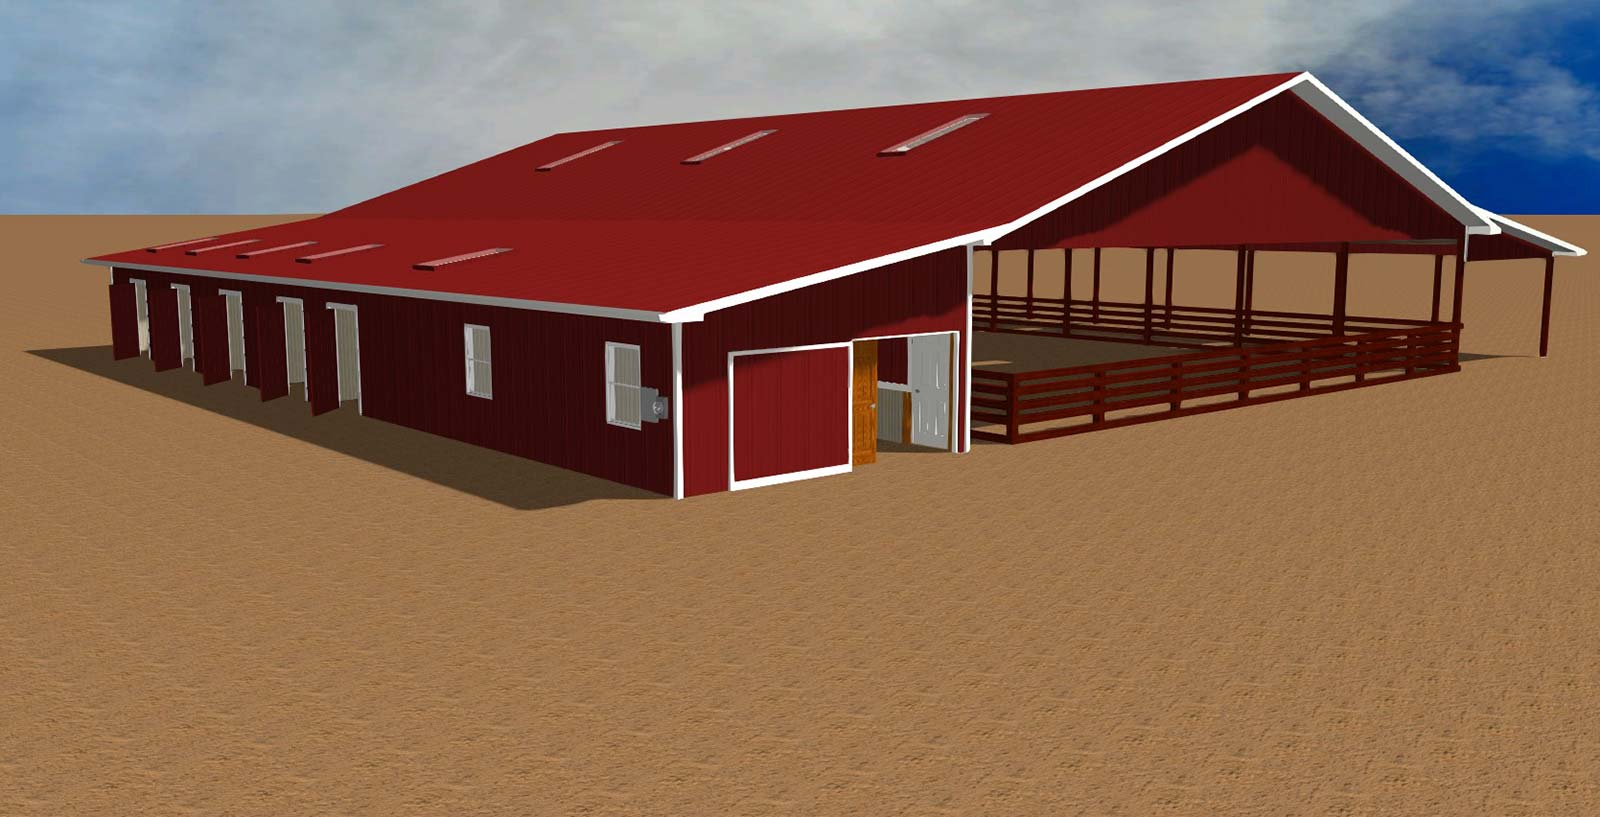 Computer rendering of Equestrian Facility design